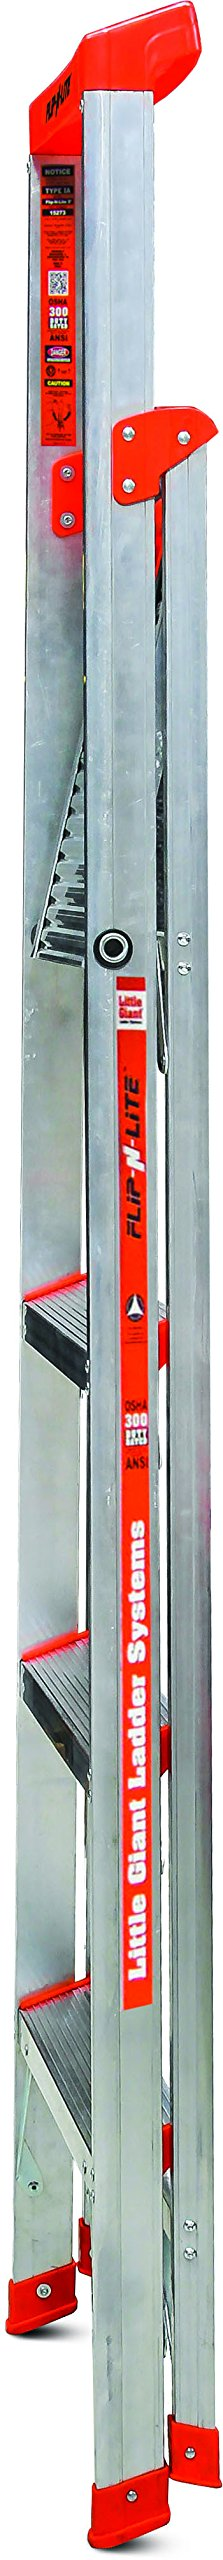 Flip-N-Lite 300-Pound Duty Rating 6-foot Stepladder with Platform by Little Giant Ladder Systems (Image #2)